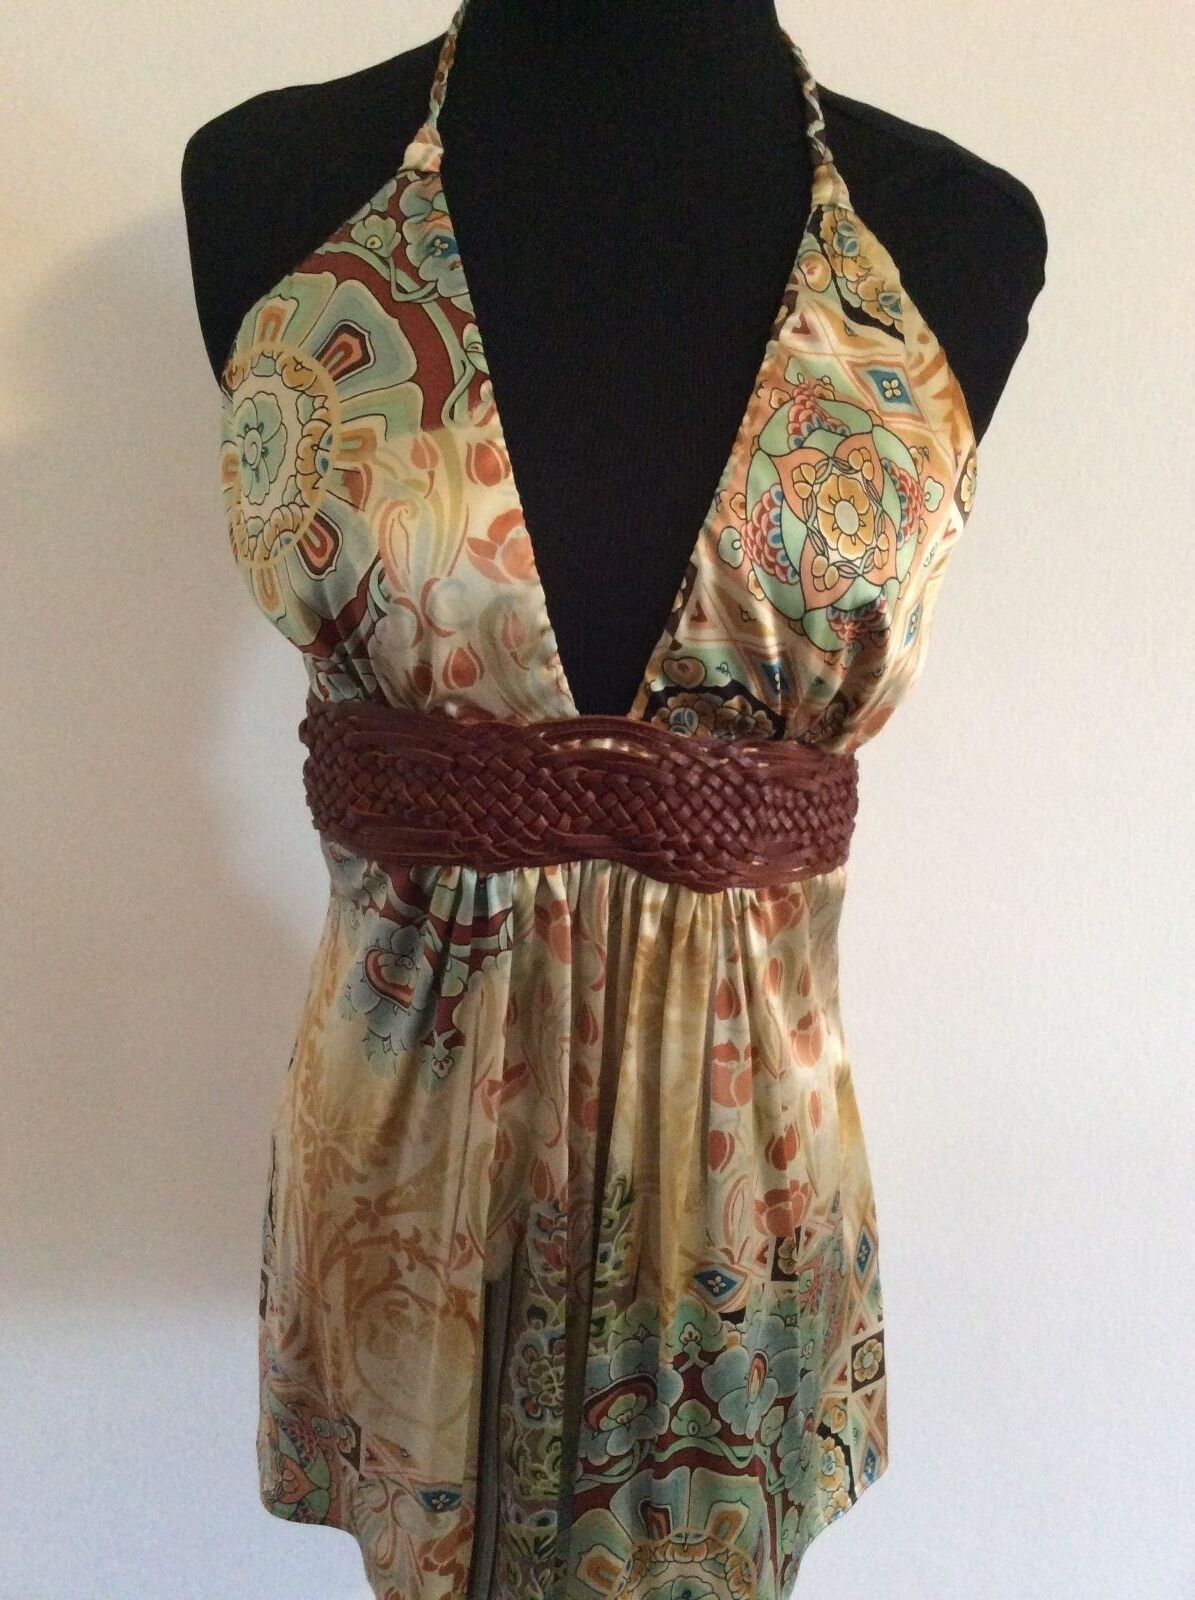 NWT SKY NEW silk halter top leather braid accent L Large ladies elegant